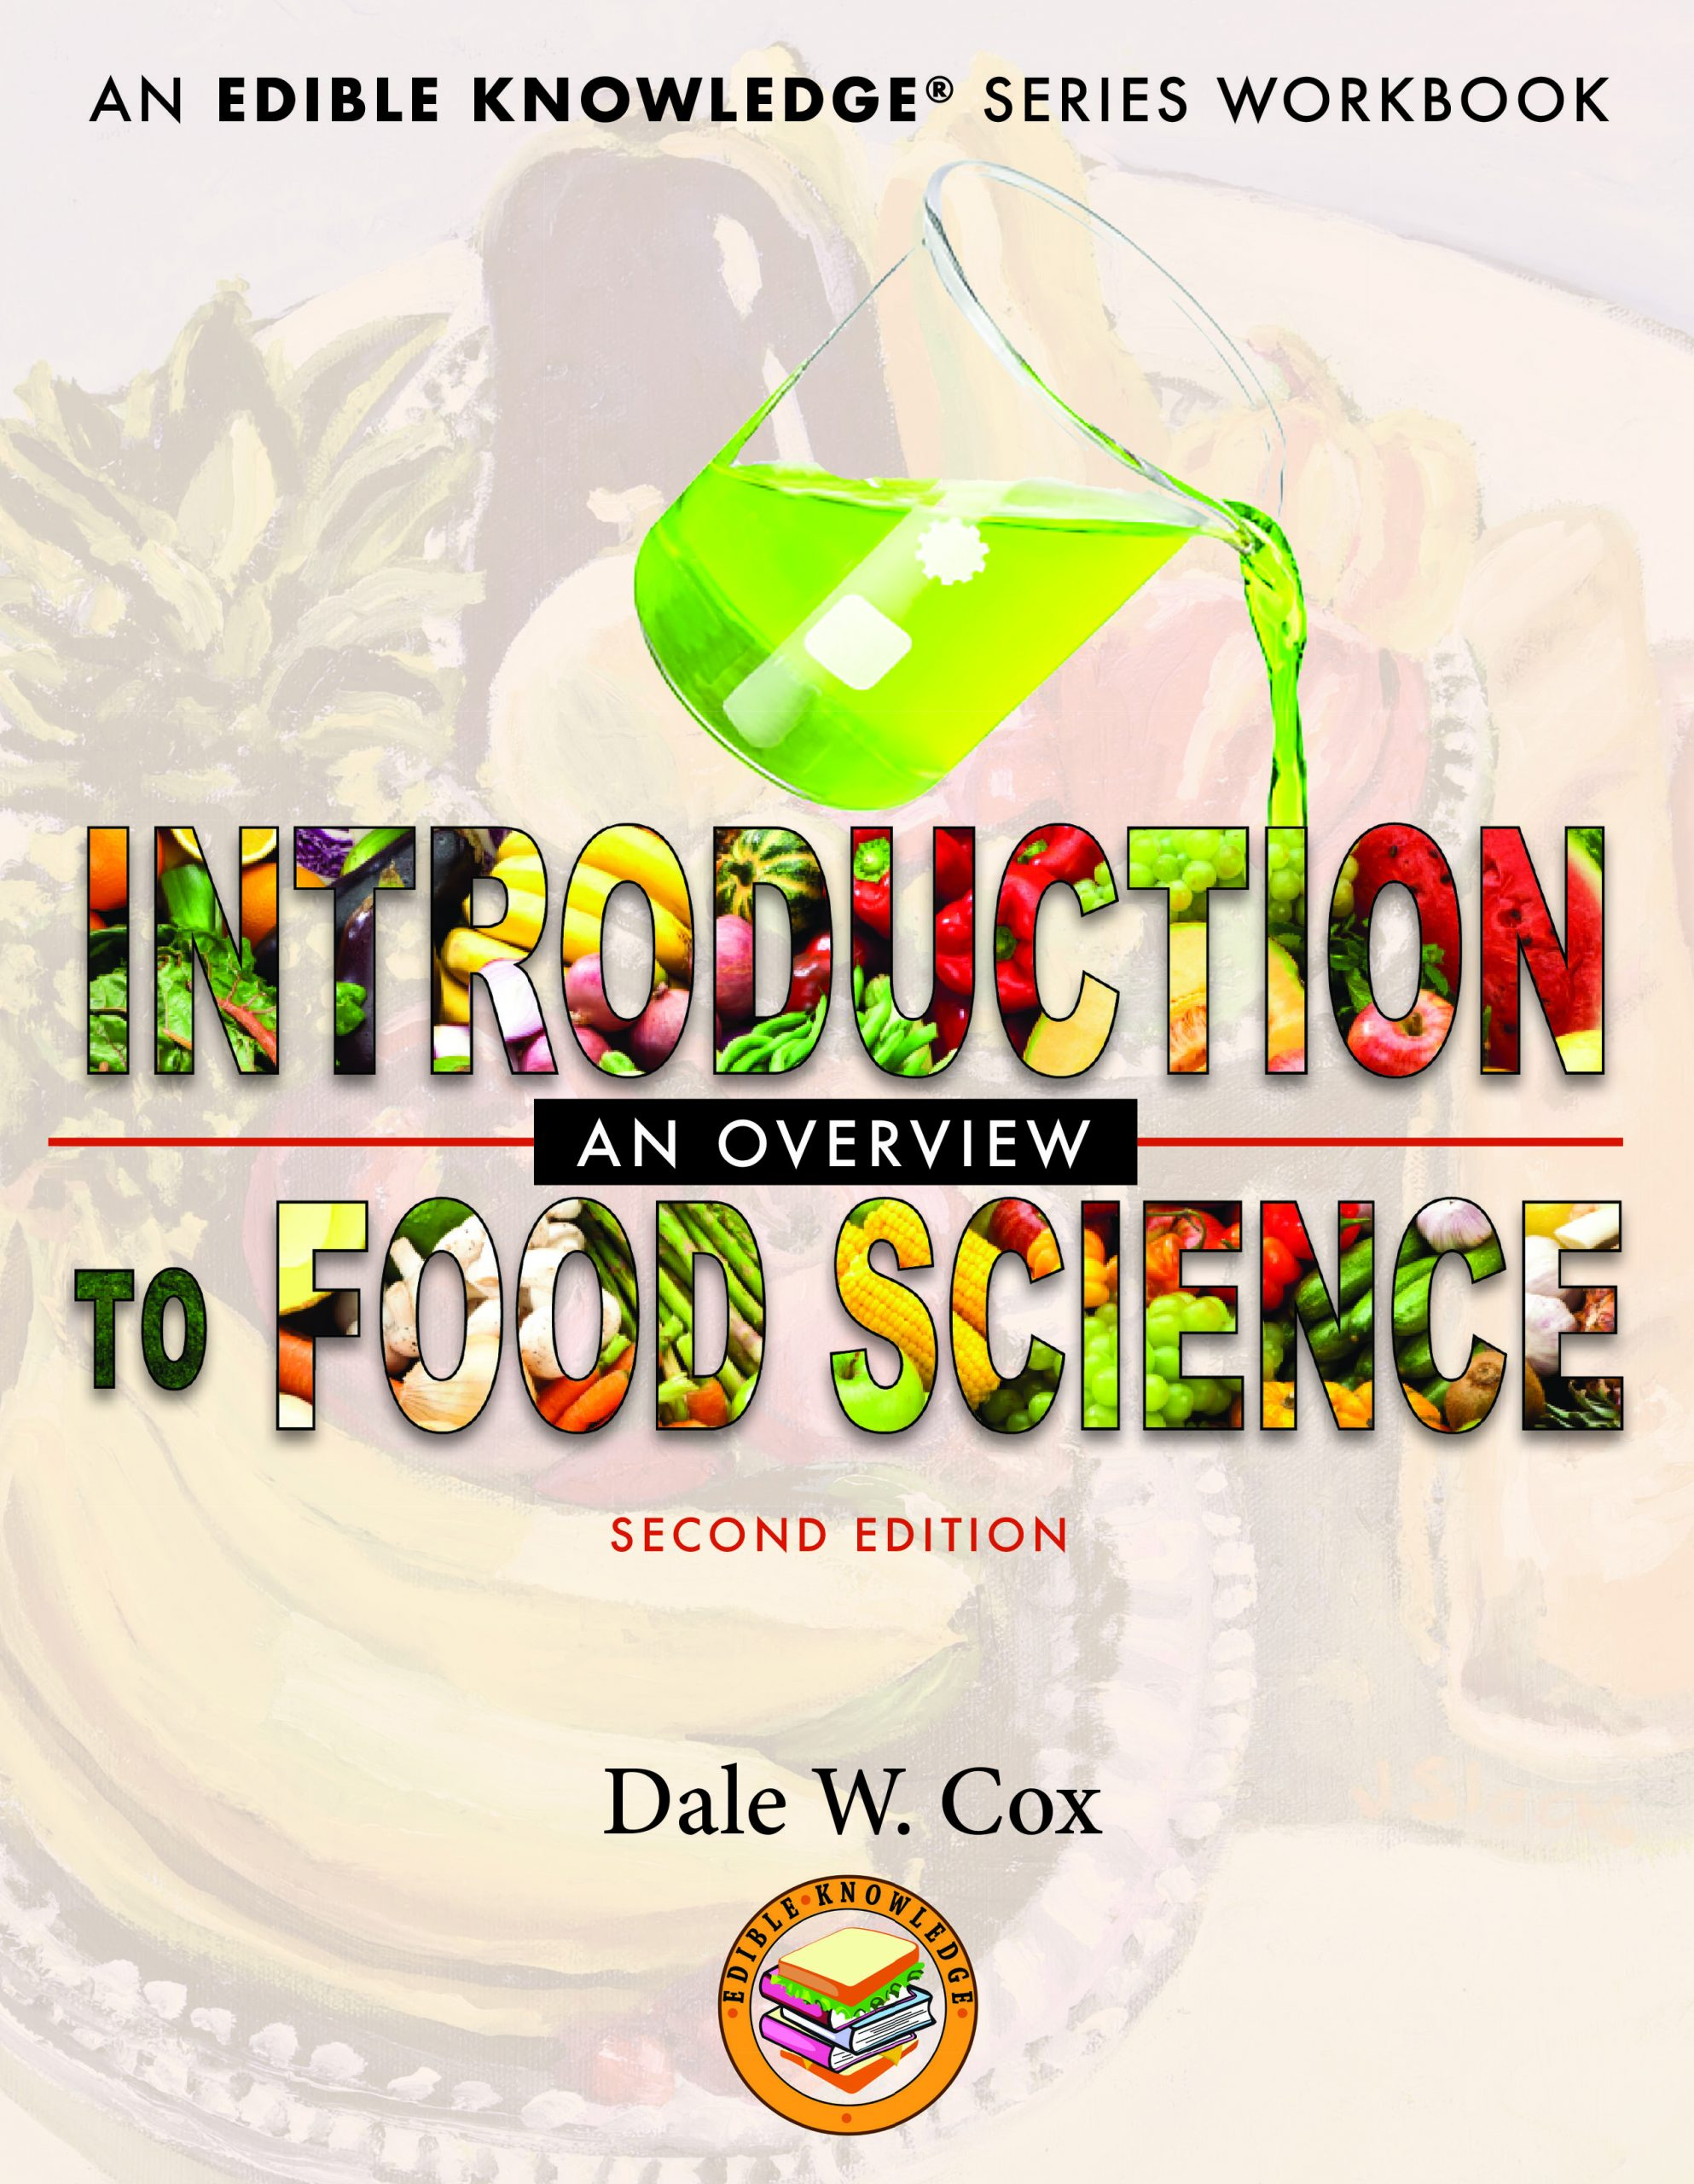 edible knowledge book